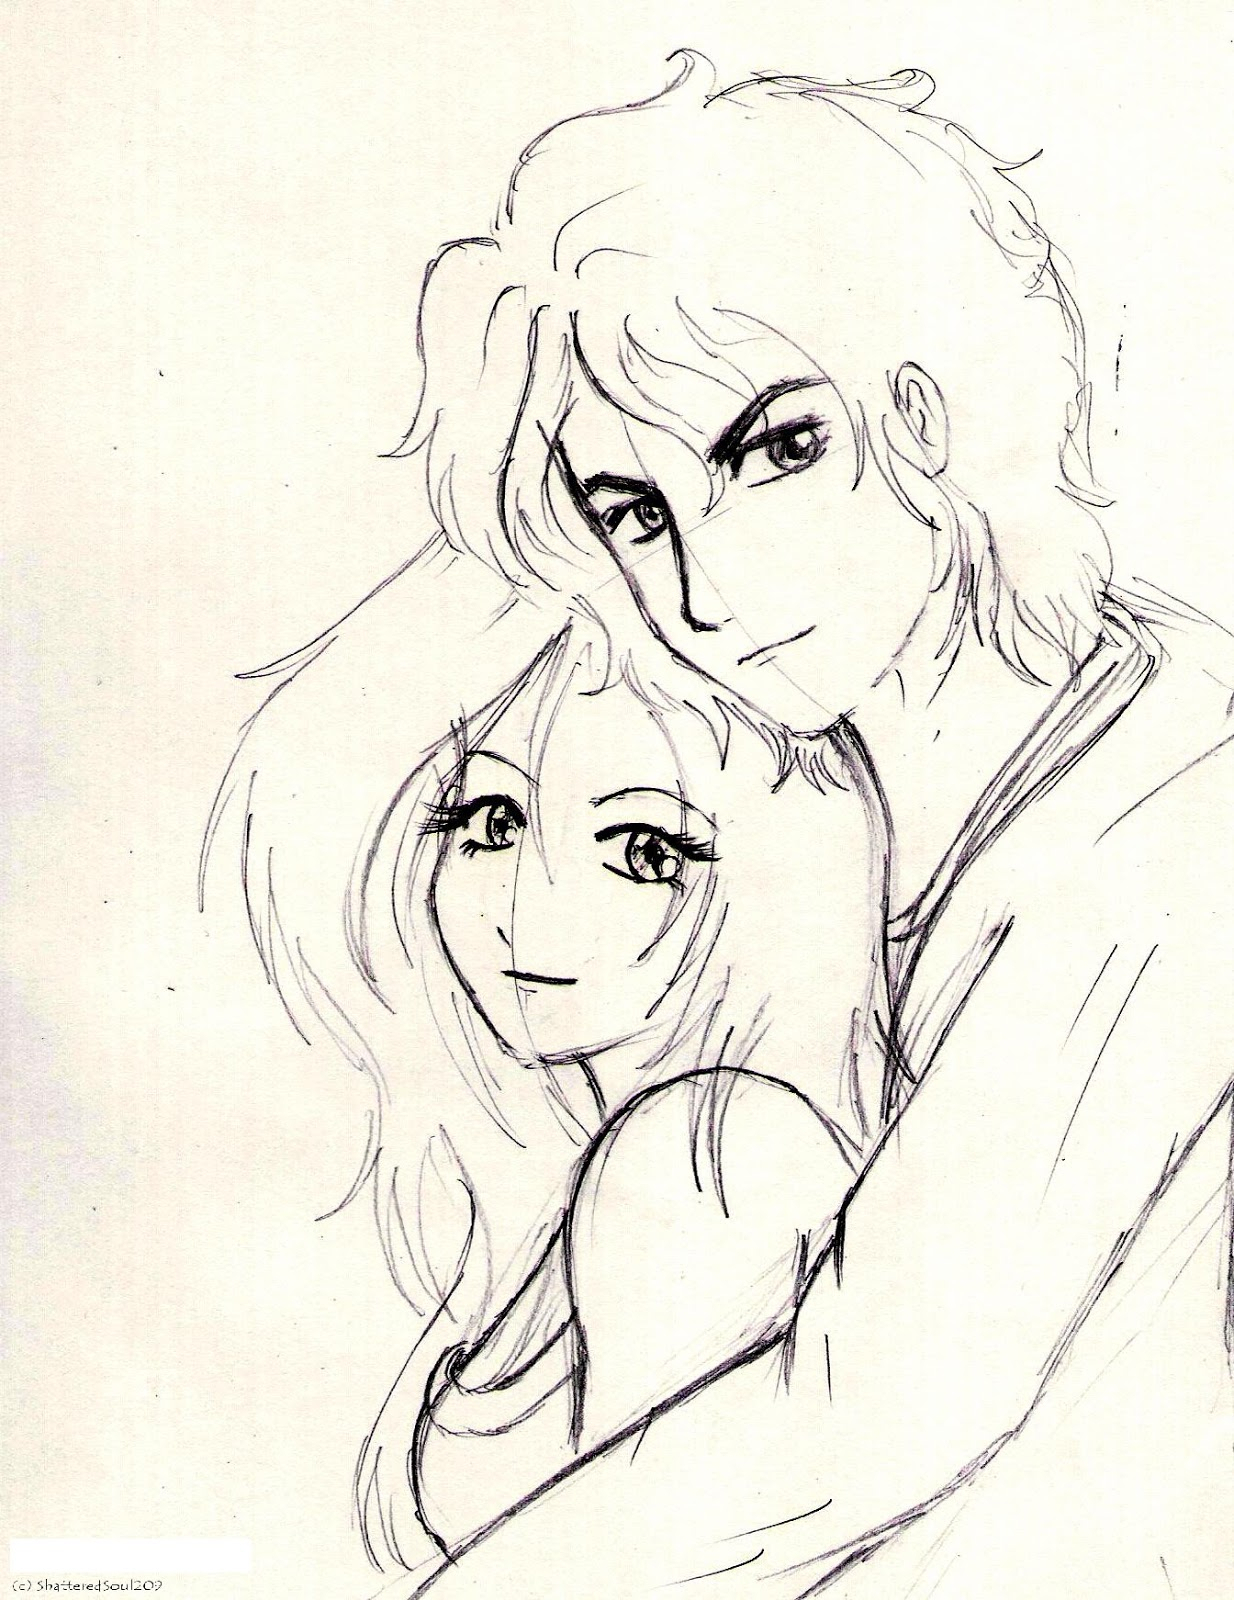 1234x1600 Sketch Guitar Couple Couple Pencil Draw Image Girl And Boy Pics